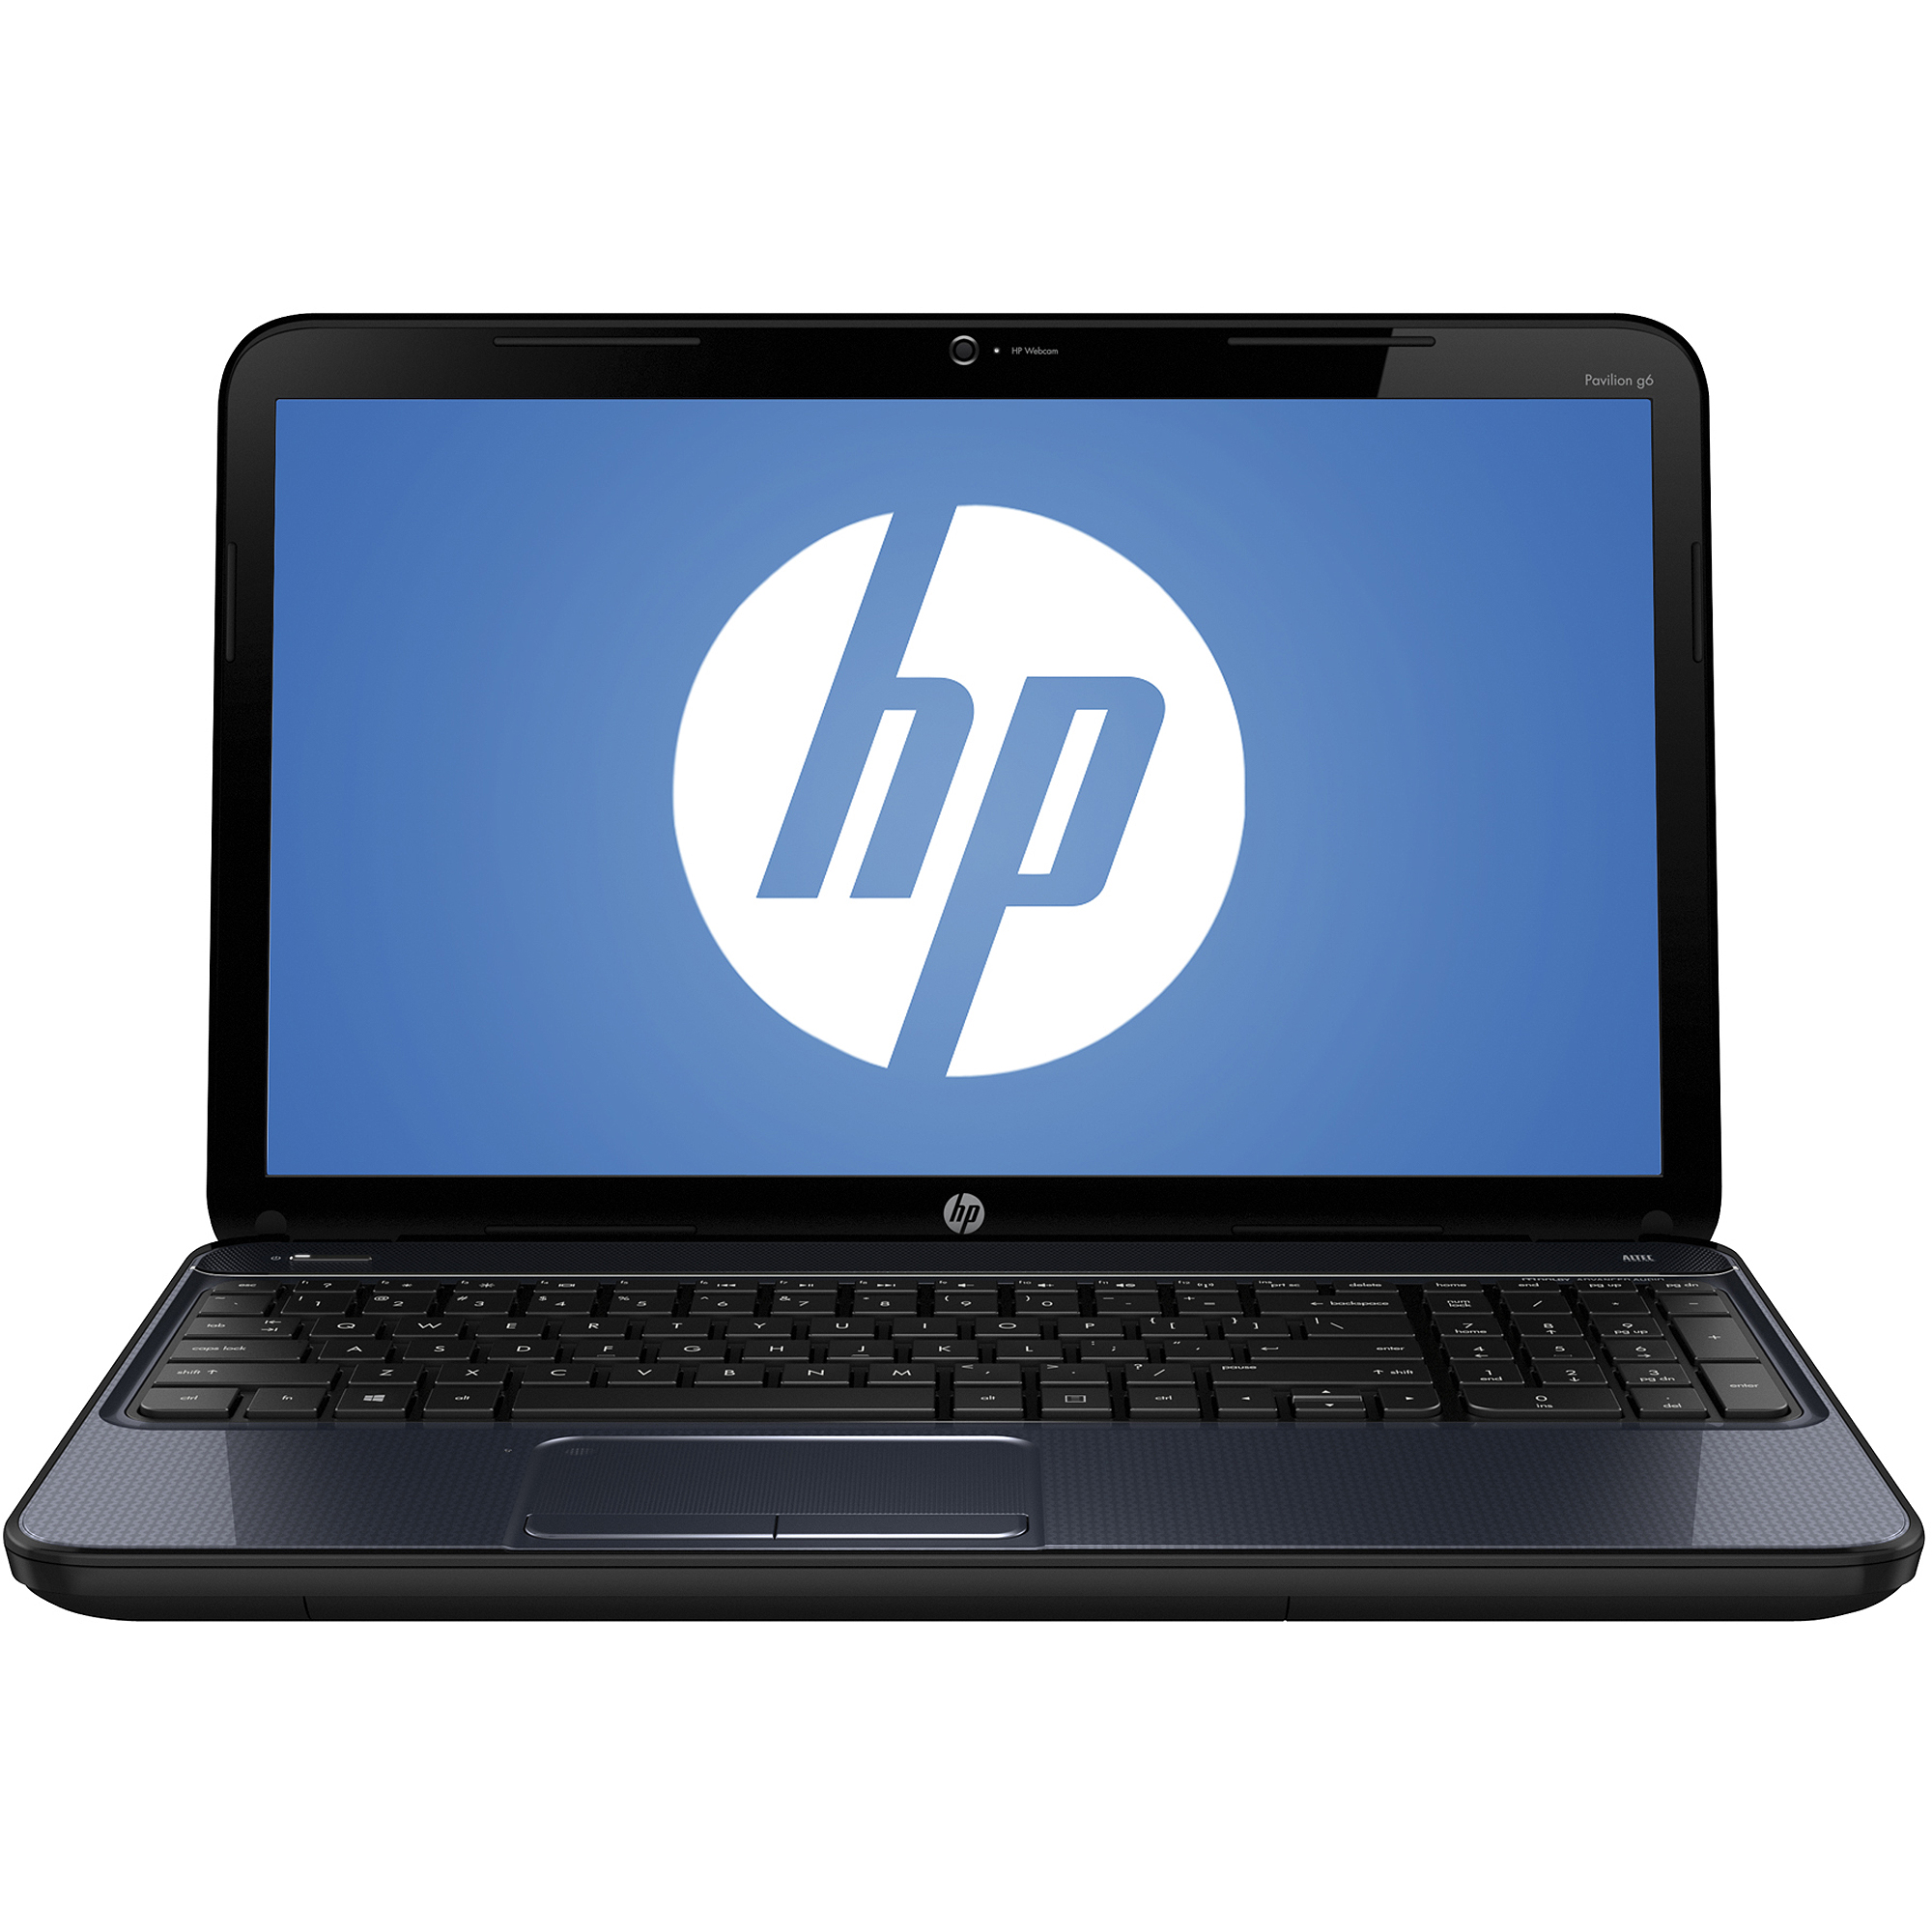 Refurbished HP Winter Blue 15.6 Pavilion g6-2249WM Laptop PC with AMD A6-4400M Accelerated Processor and Windows 8 Operating Sys